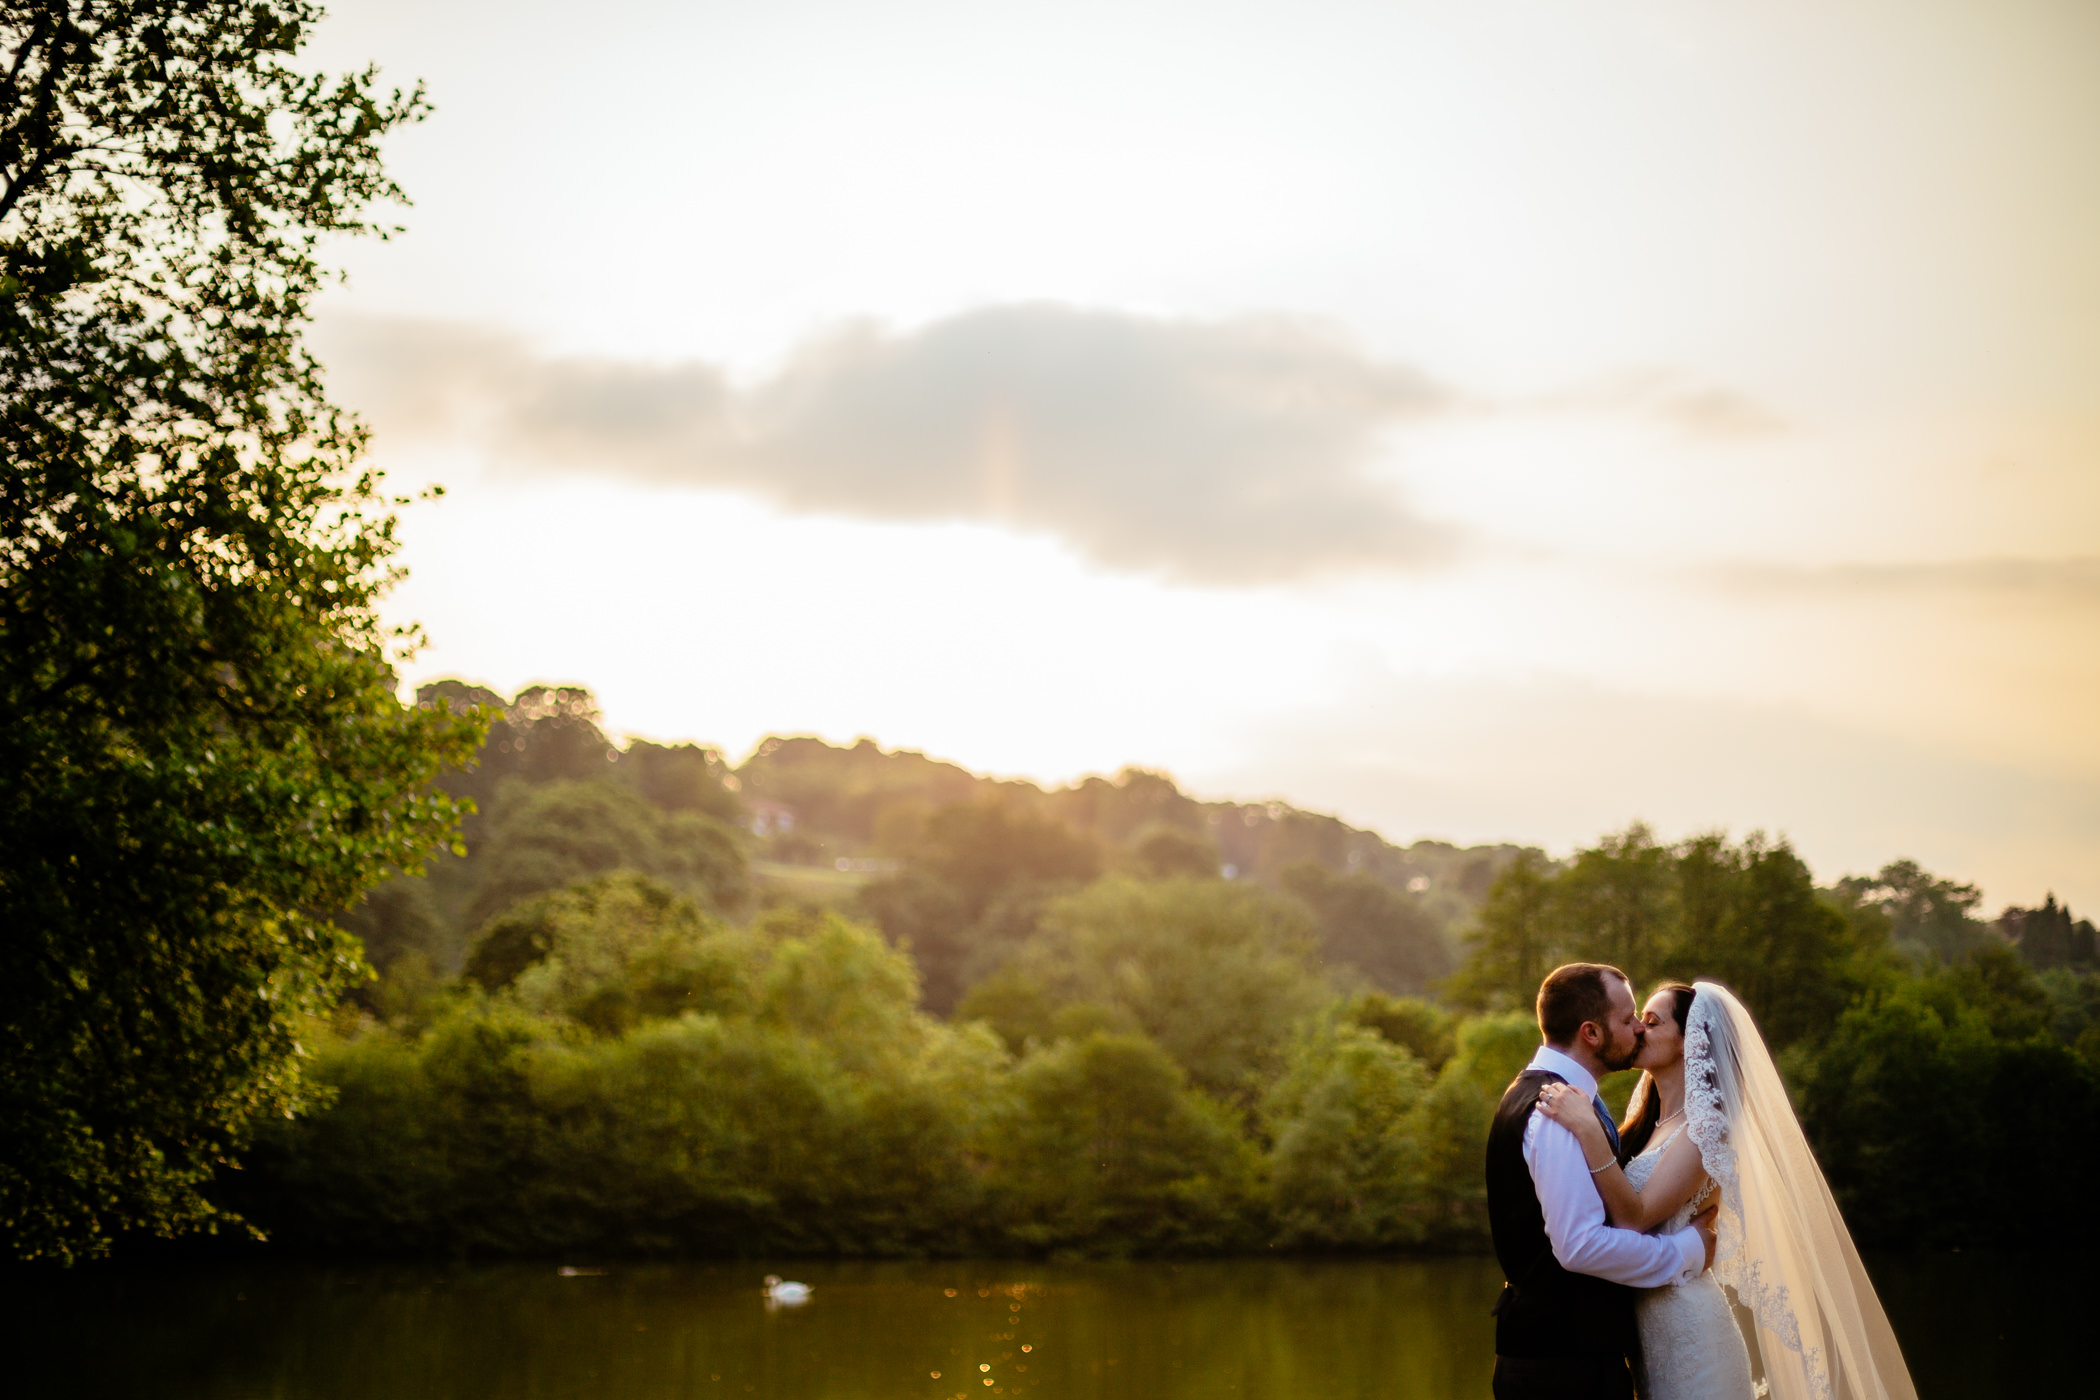 Kelly & Matt - Sansom Photography Manchester Wedding Photography-49